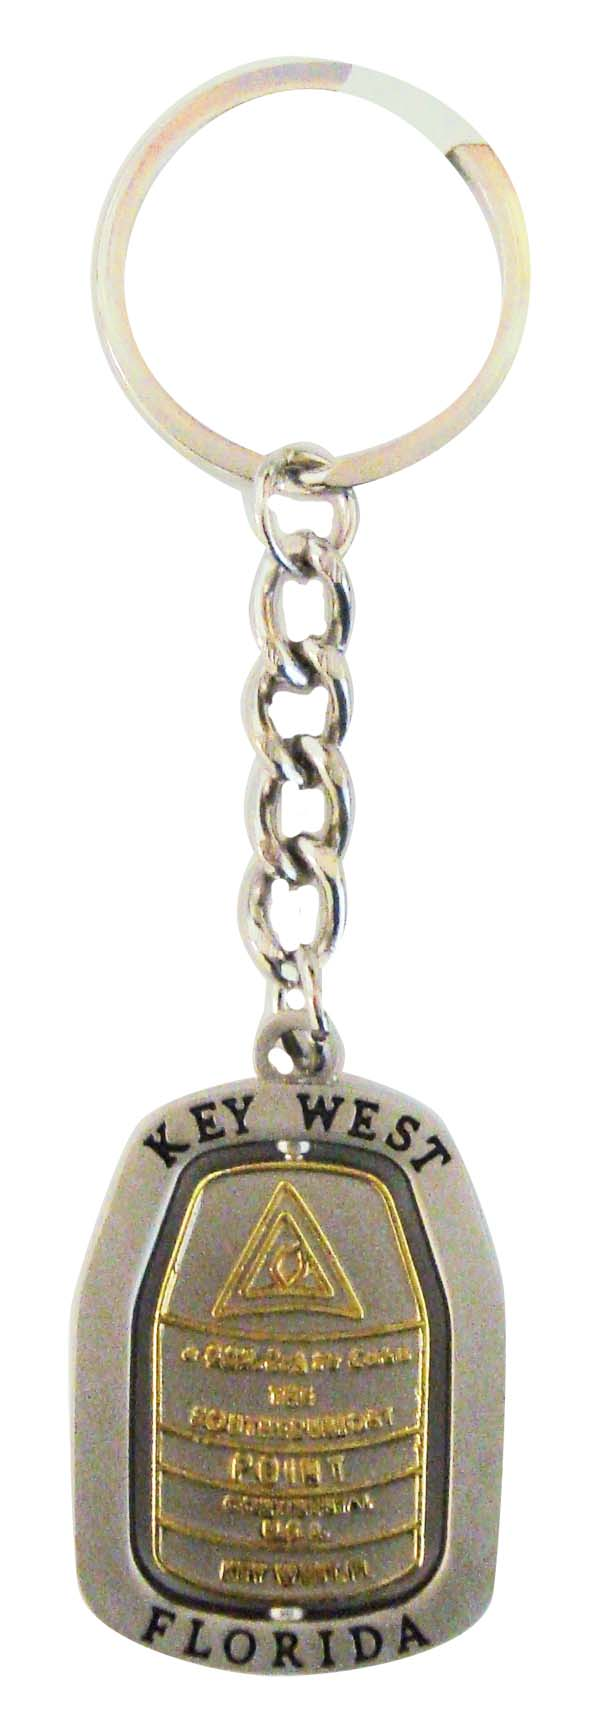 Key Chain METAL-SPIN SOUTHERN BUOY - UOM: DZ - Minimum Order:1